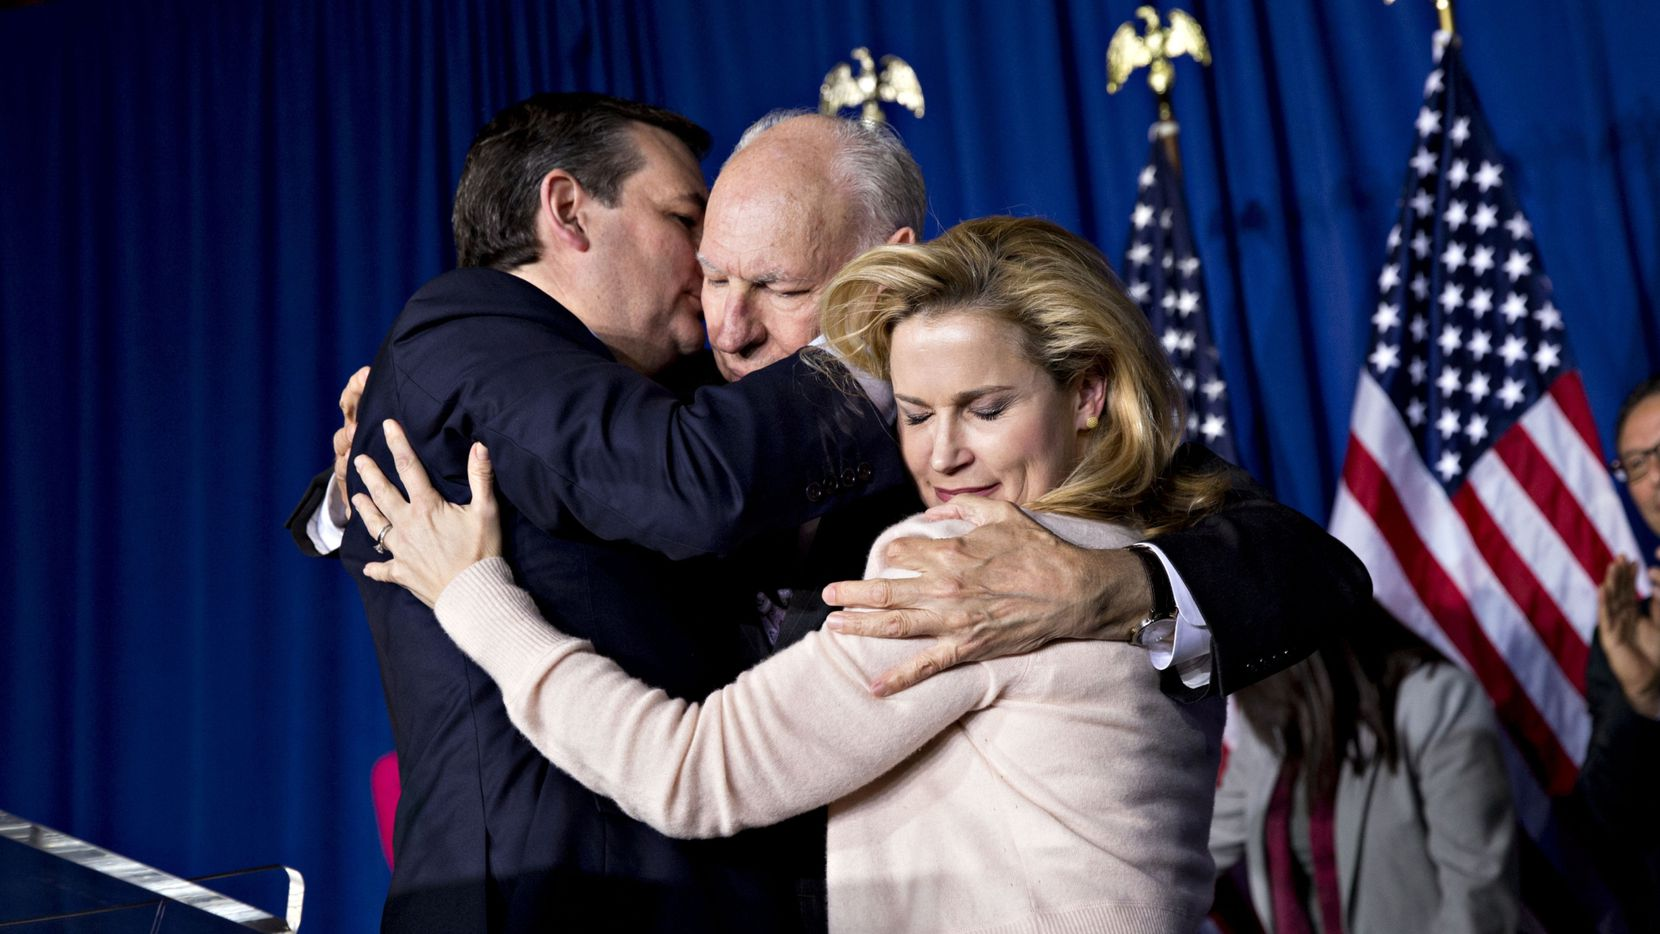 Sen. Ted Cruz embraces his father, Rafael Cruz, and wife Heidi after suspending his presidential campaign in Indianapolis on May 3. (Bloomberg/Daniel Acker)